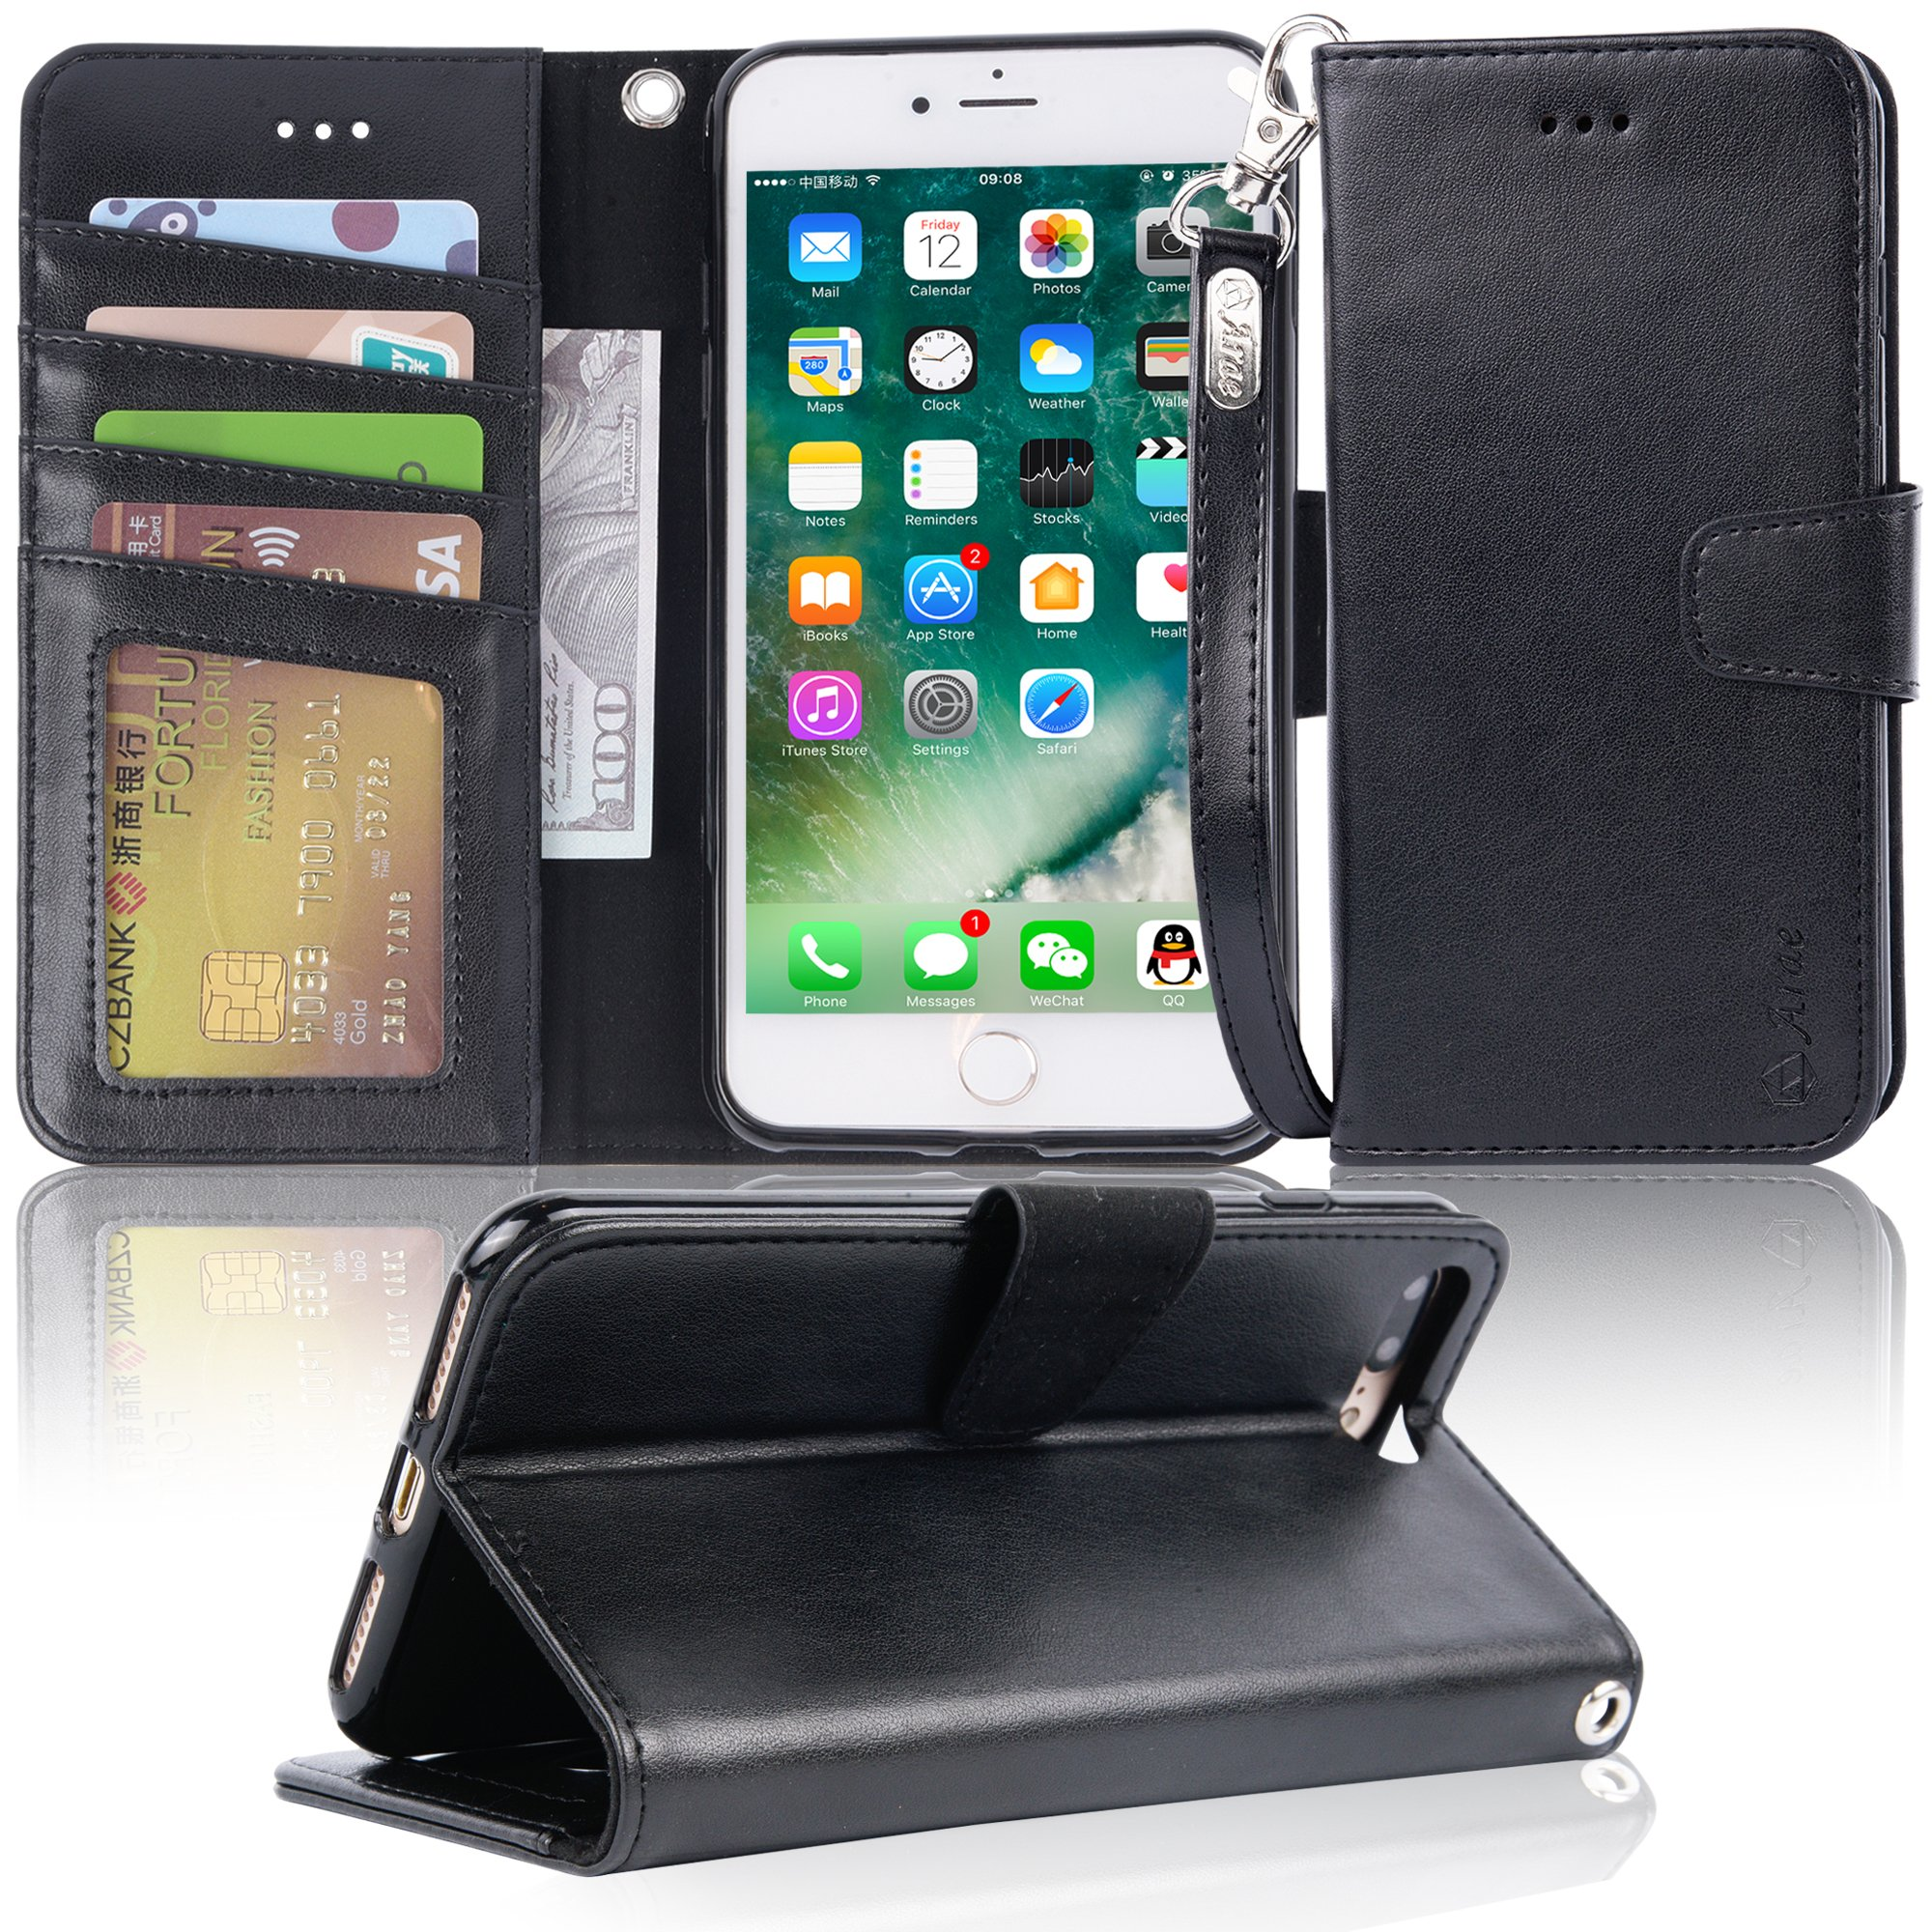 Arae Case for iPhone 7 Plus/iPhone 8 Plus, Premium PU Leather Wallet Case with Kickstand and Flip Cover for iPhone 7 Plus (2016) / iPhone 8 Plus (2017) 5.5'' (not for iPhone 7/8) - Black by Arae